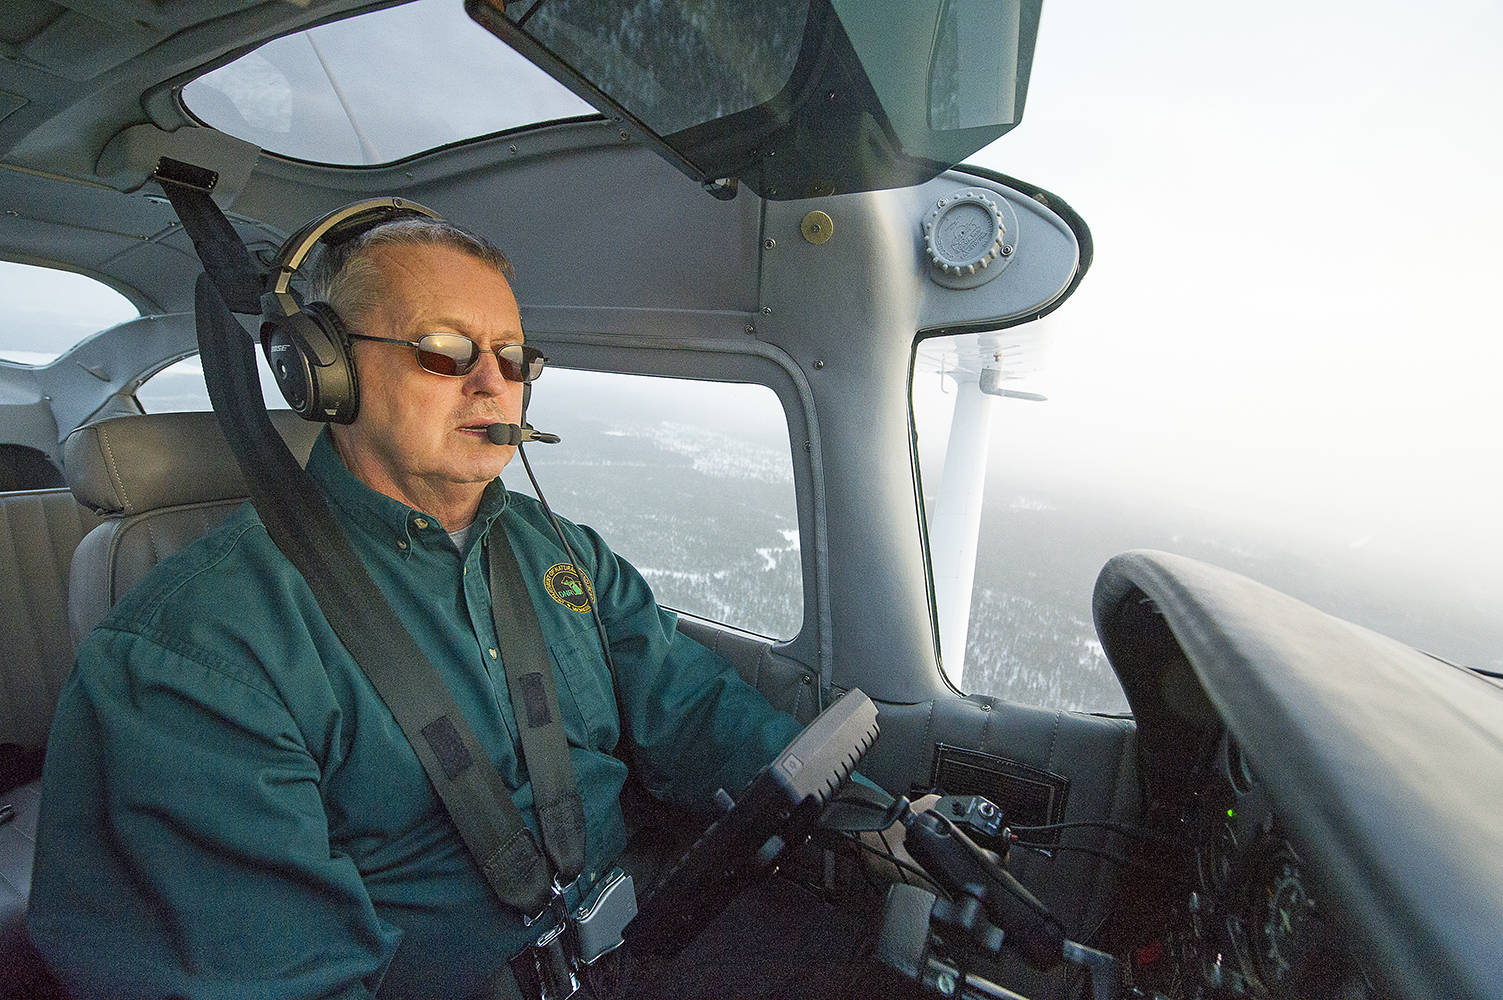 Sitting in his cockpit is Bill Green, chief pilot for the Michigan Department of Natural Resources.